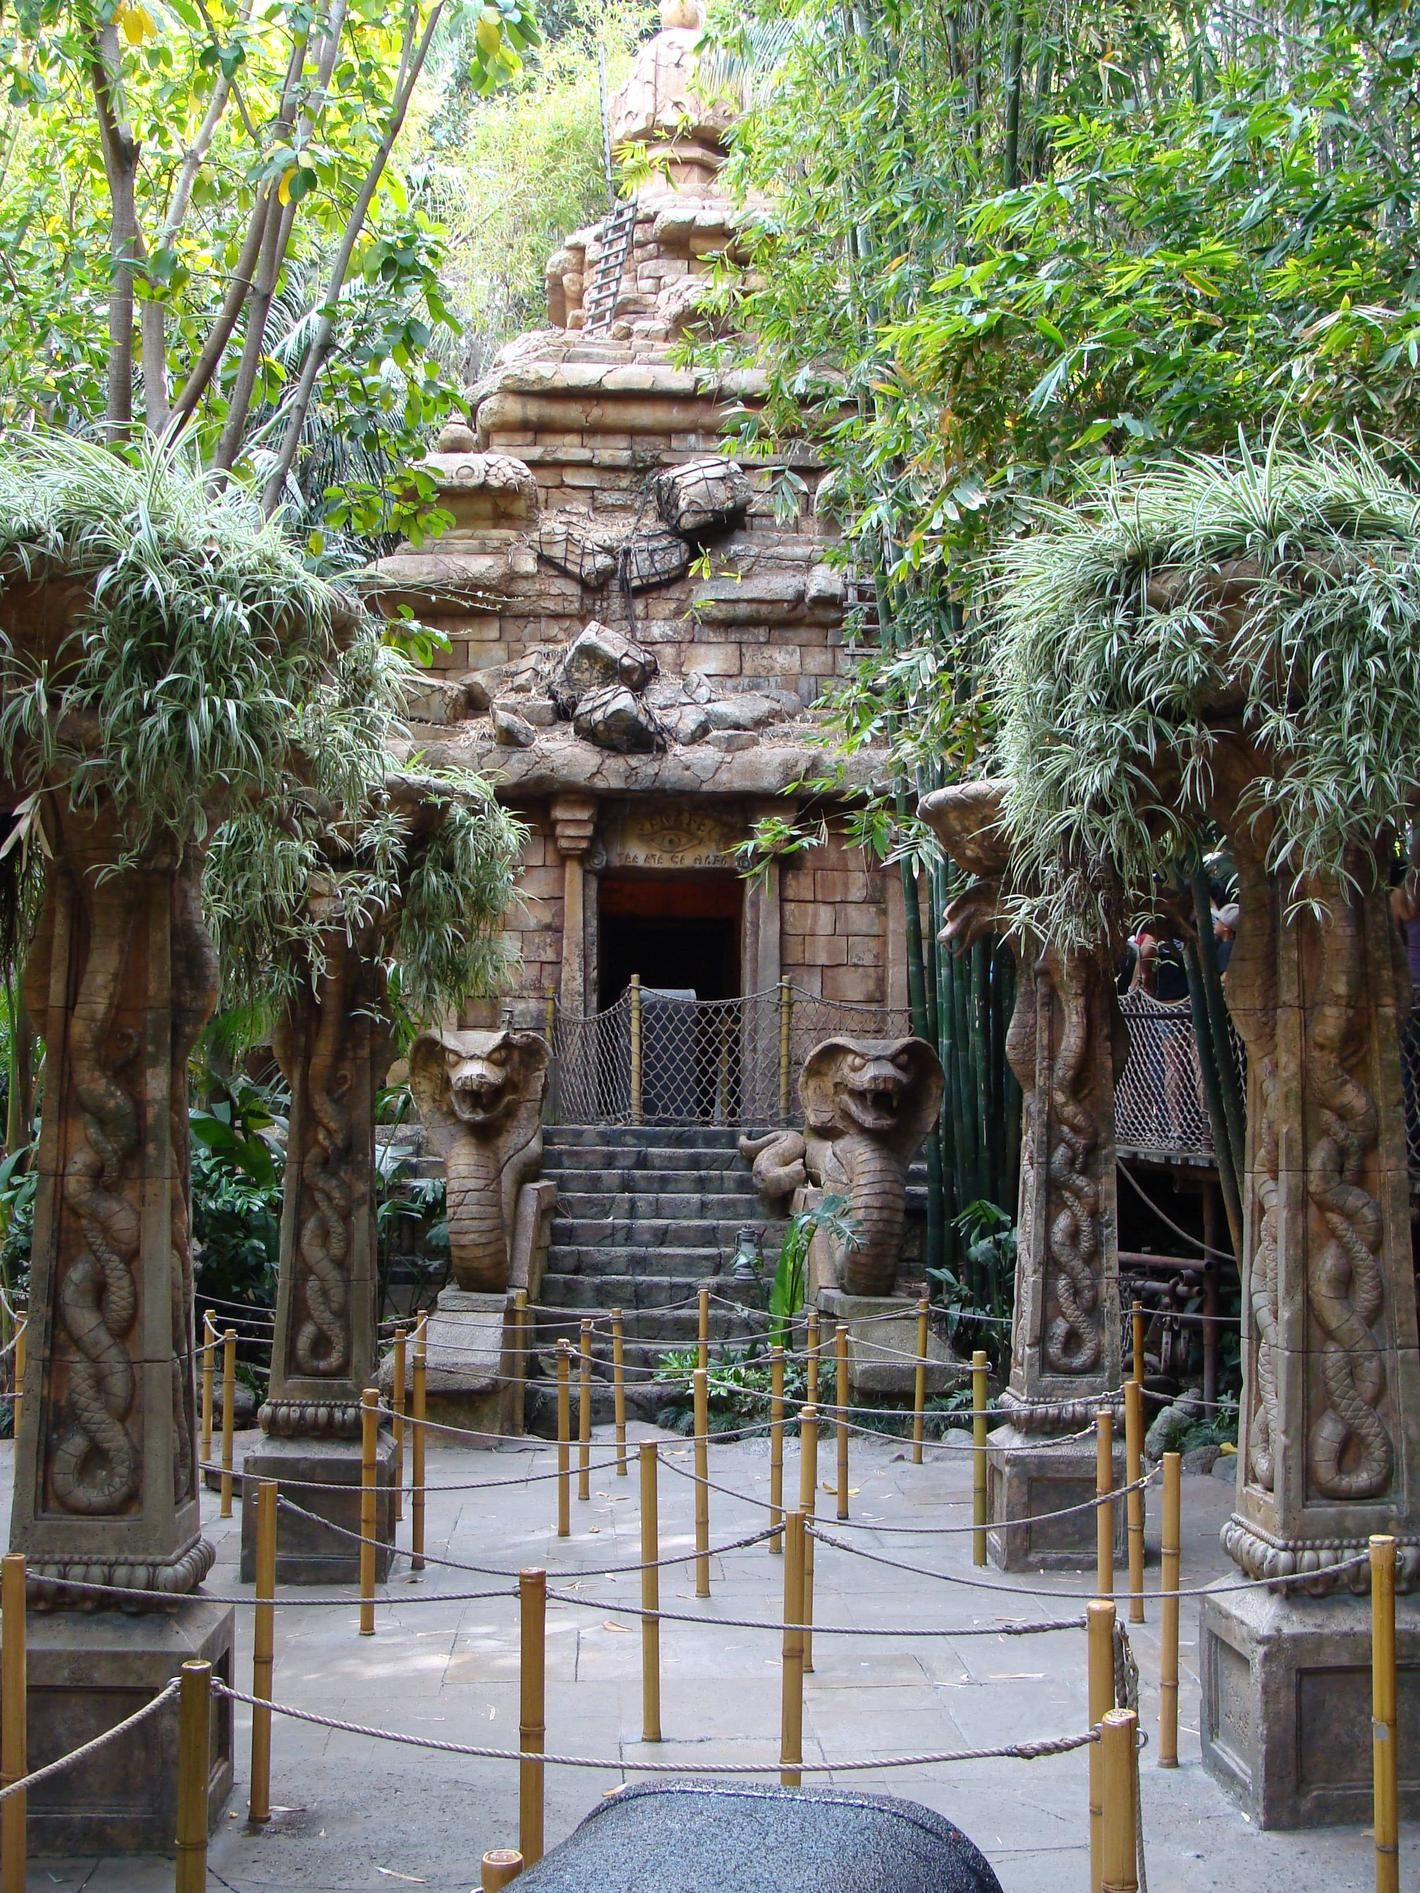 Indiana Jones Ride Disneyland Ca Disneyland The Original